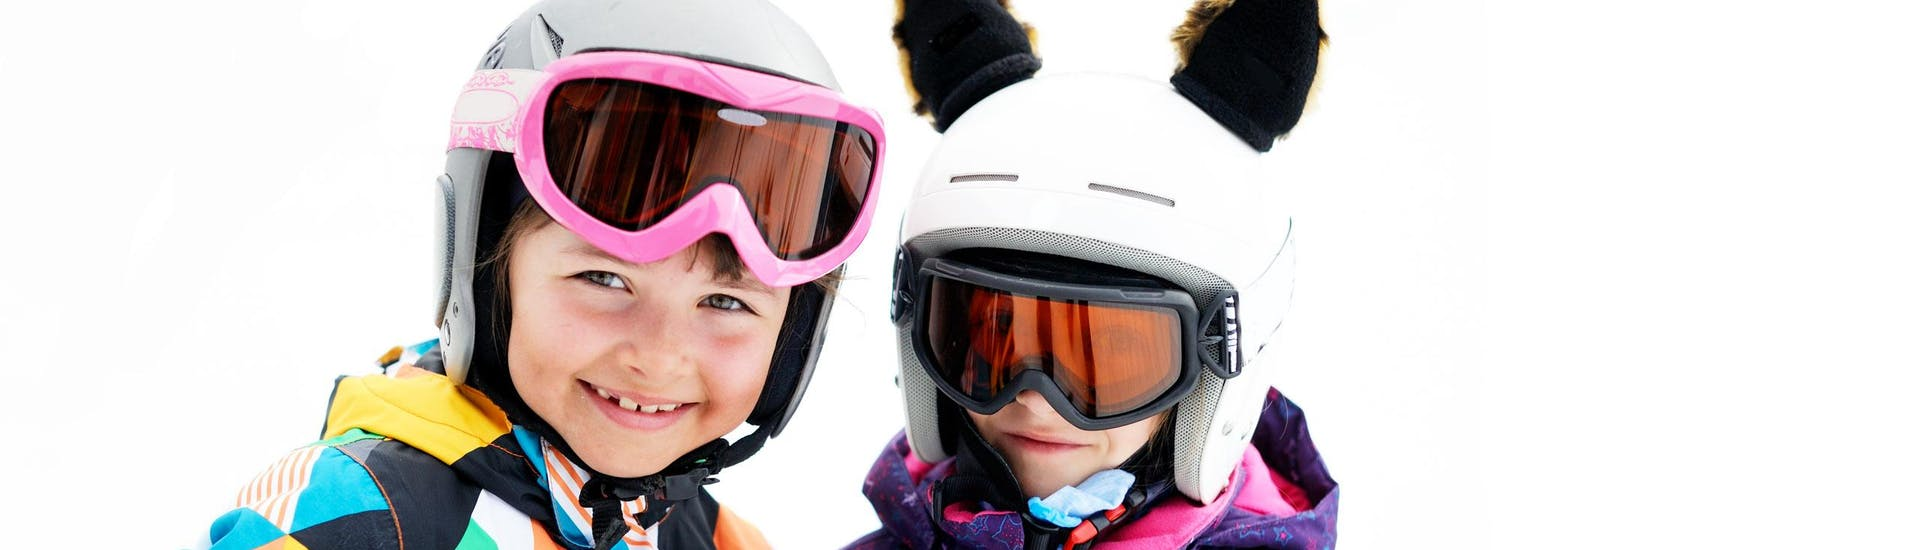 Two young children smiling at the camera during one of the Private Ski Lessons for Kids of All Levels - Morning organised by Summit Ski & Snowboard School Zermatt.